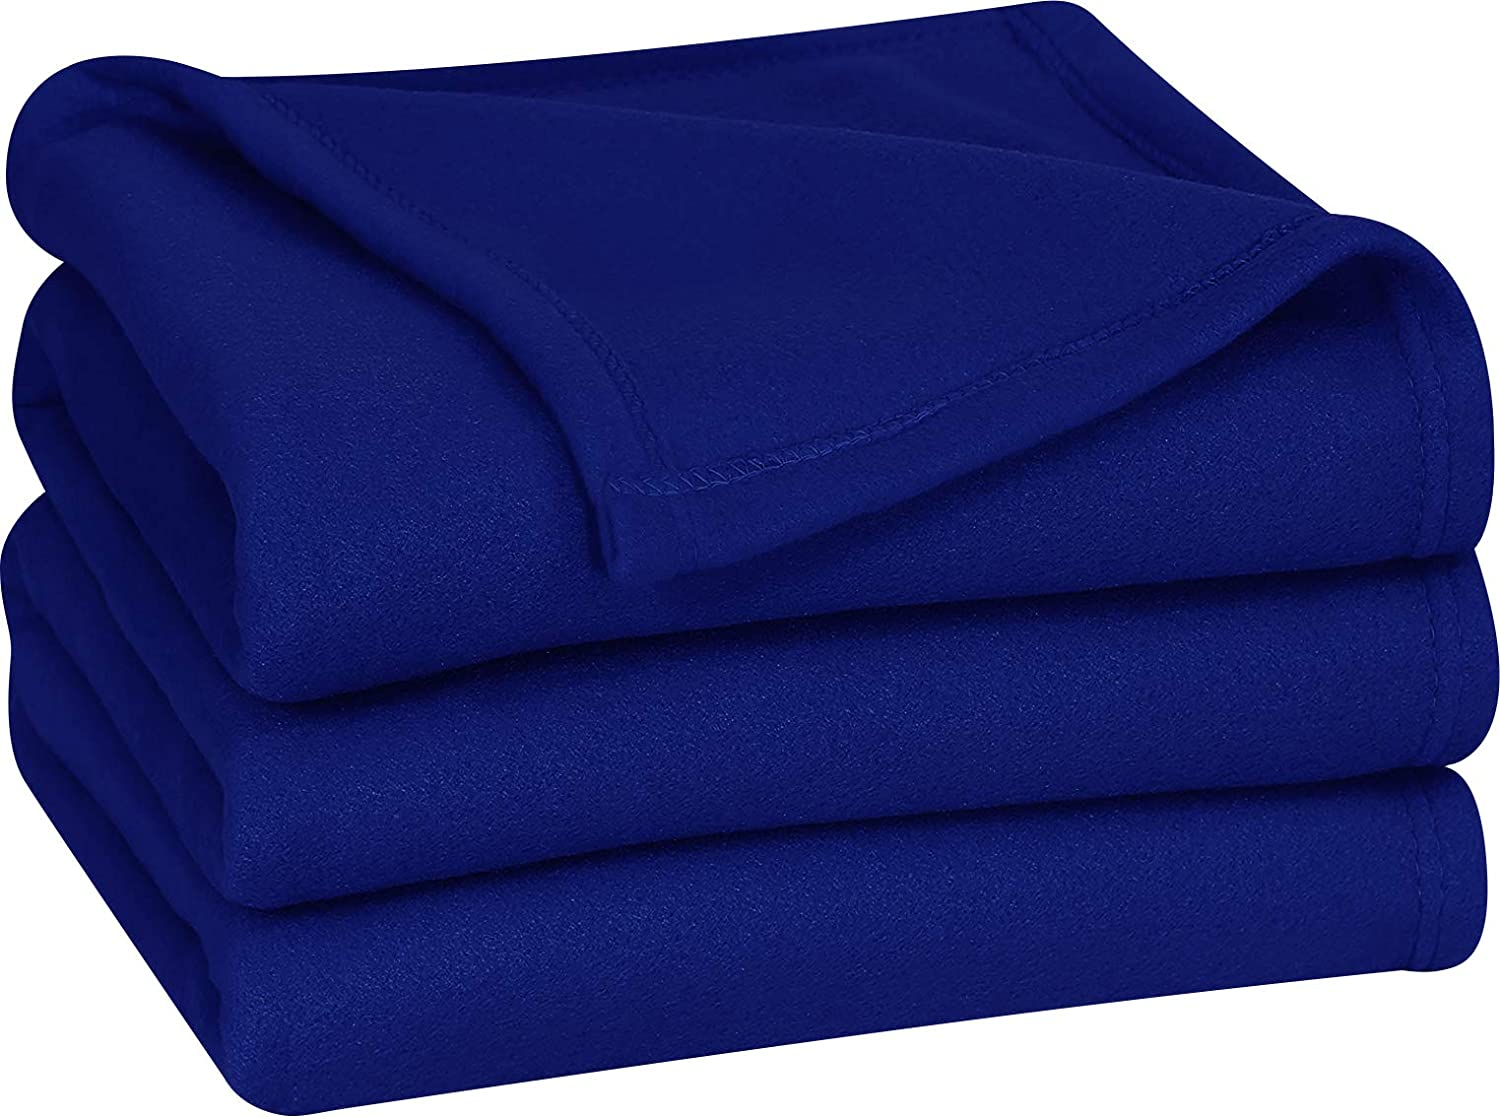 Polar Fleece Blanket (Twin, Navy) - Extra Soft Brushed Polyester Fabric - Lightweight and Durable Bed/Couch Blanket - Machine Washable